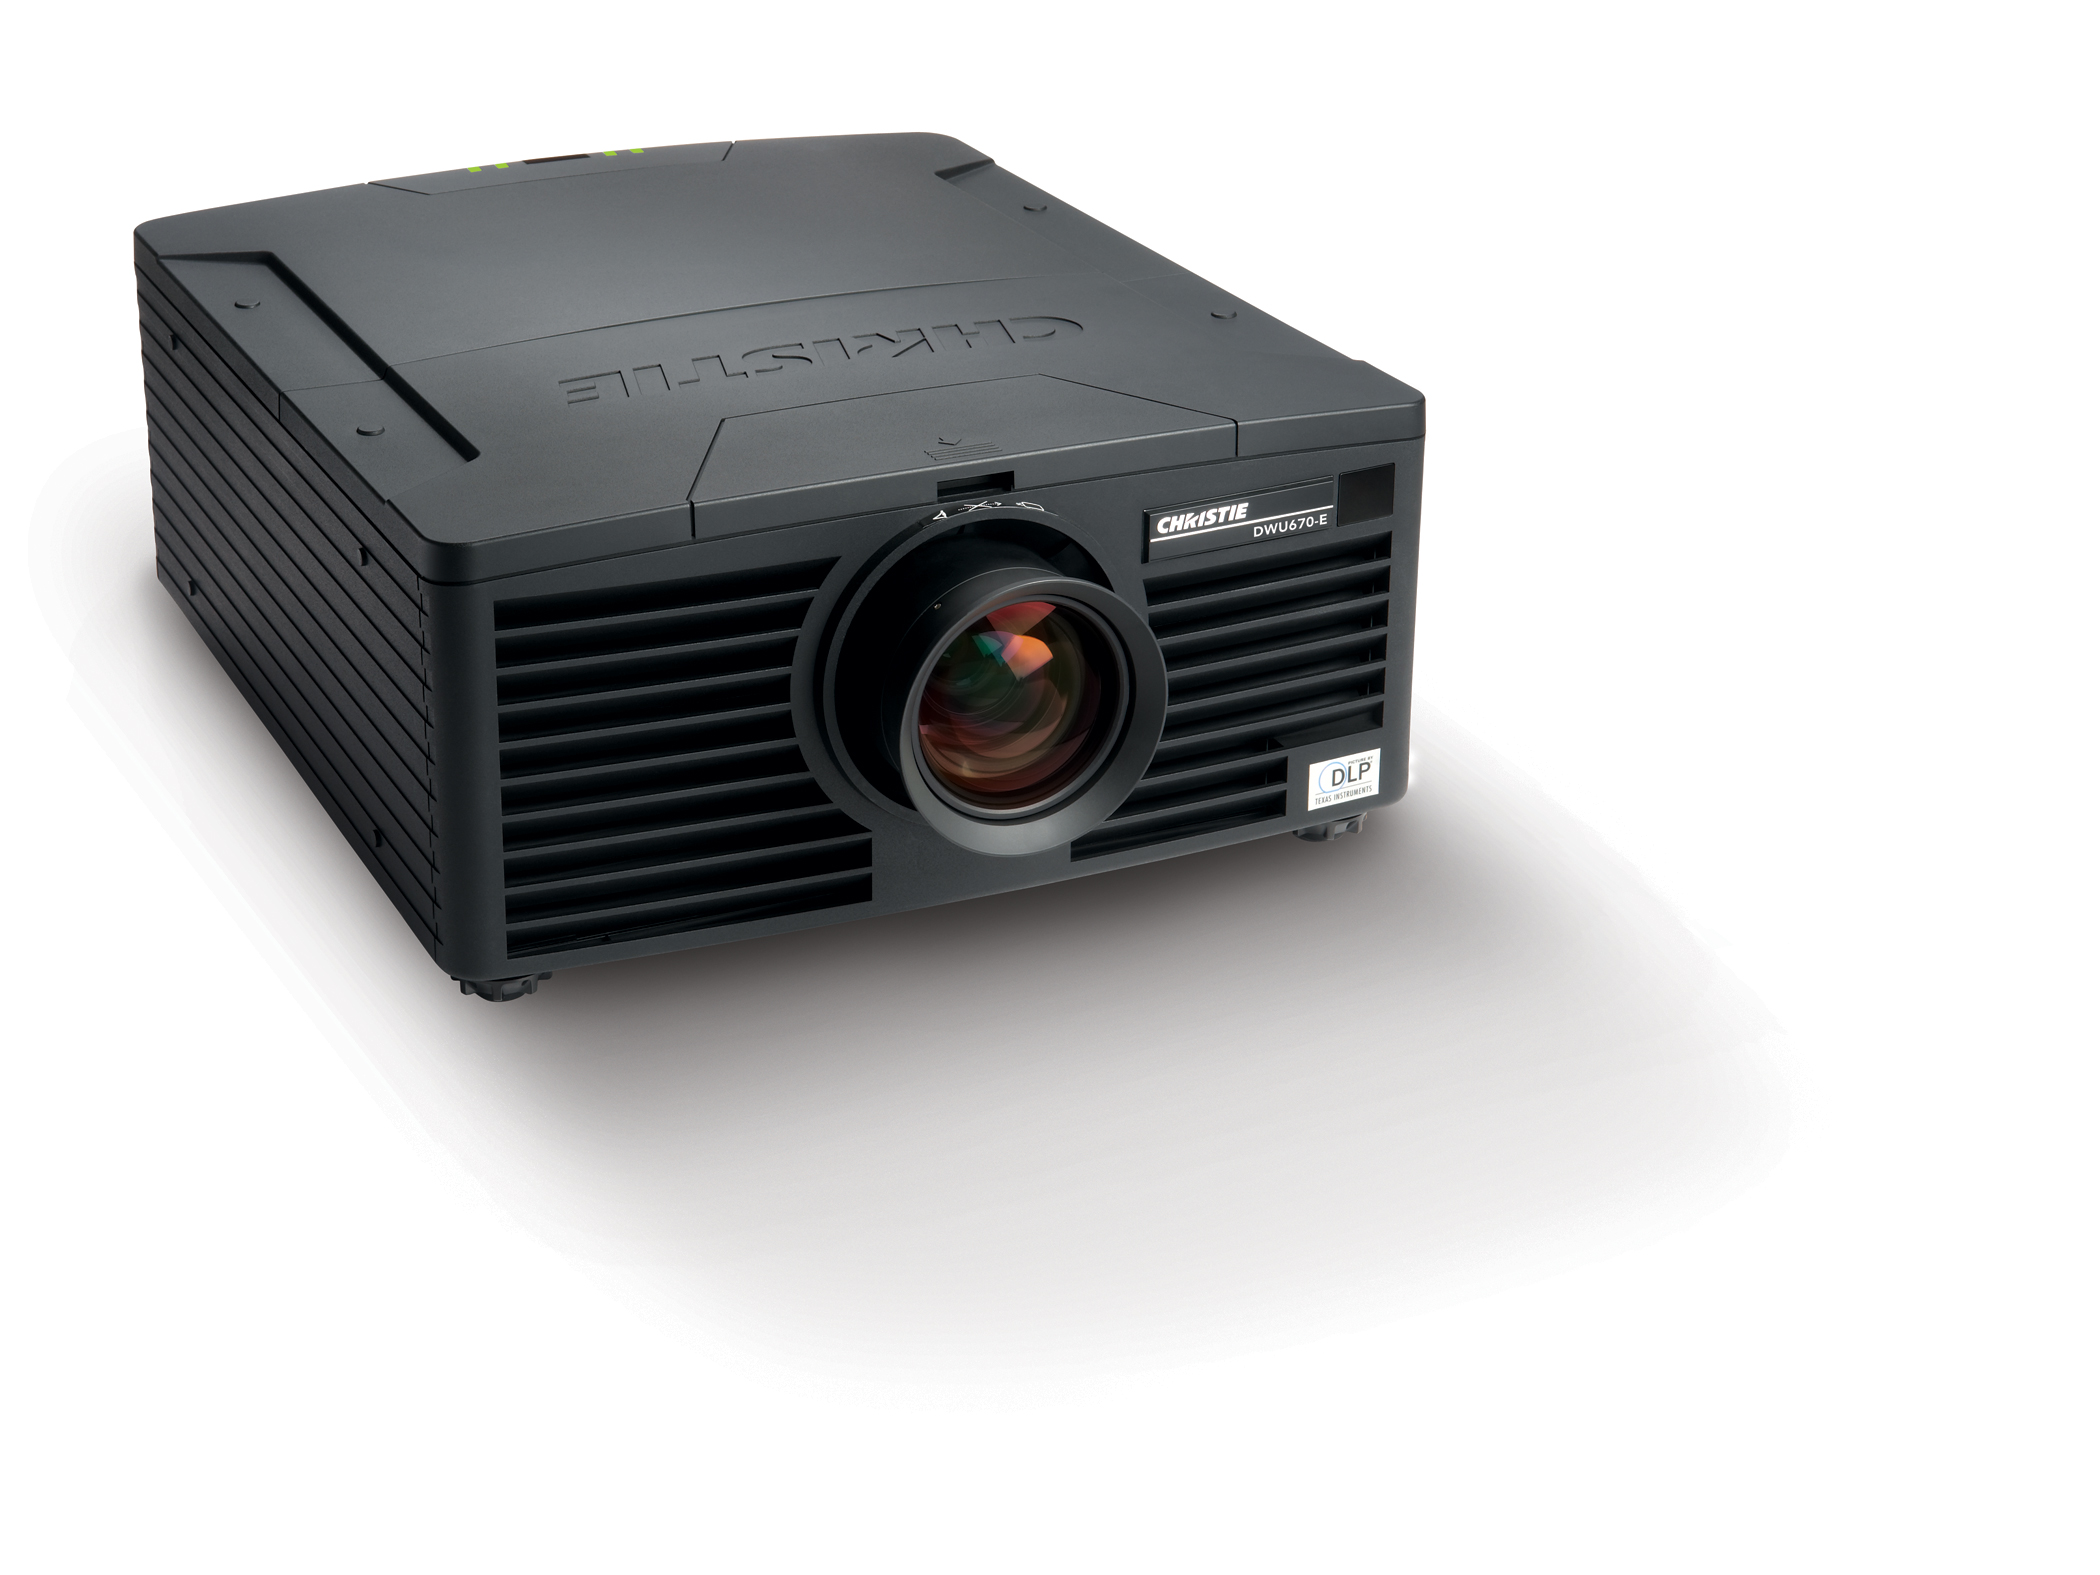 /globalassets/.catalog/products/images/christie-dwu670-e/gallery/christie-dwu670-e-dlp-digital-projector-top-right-pr.jpg